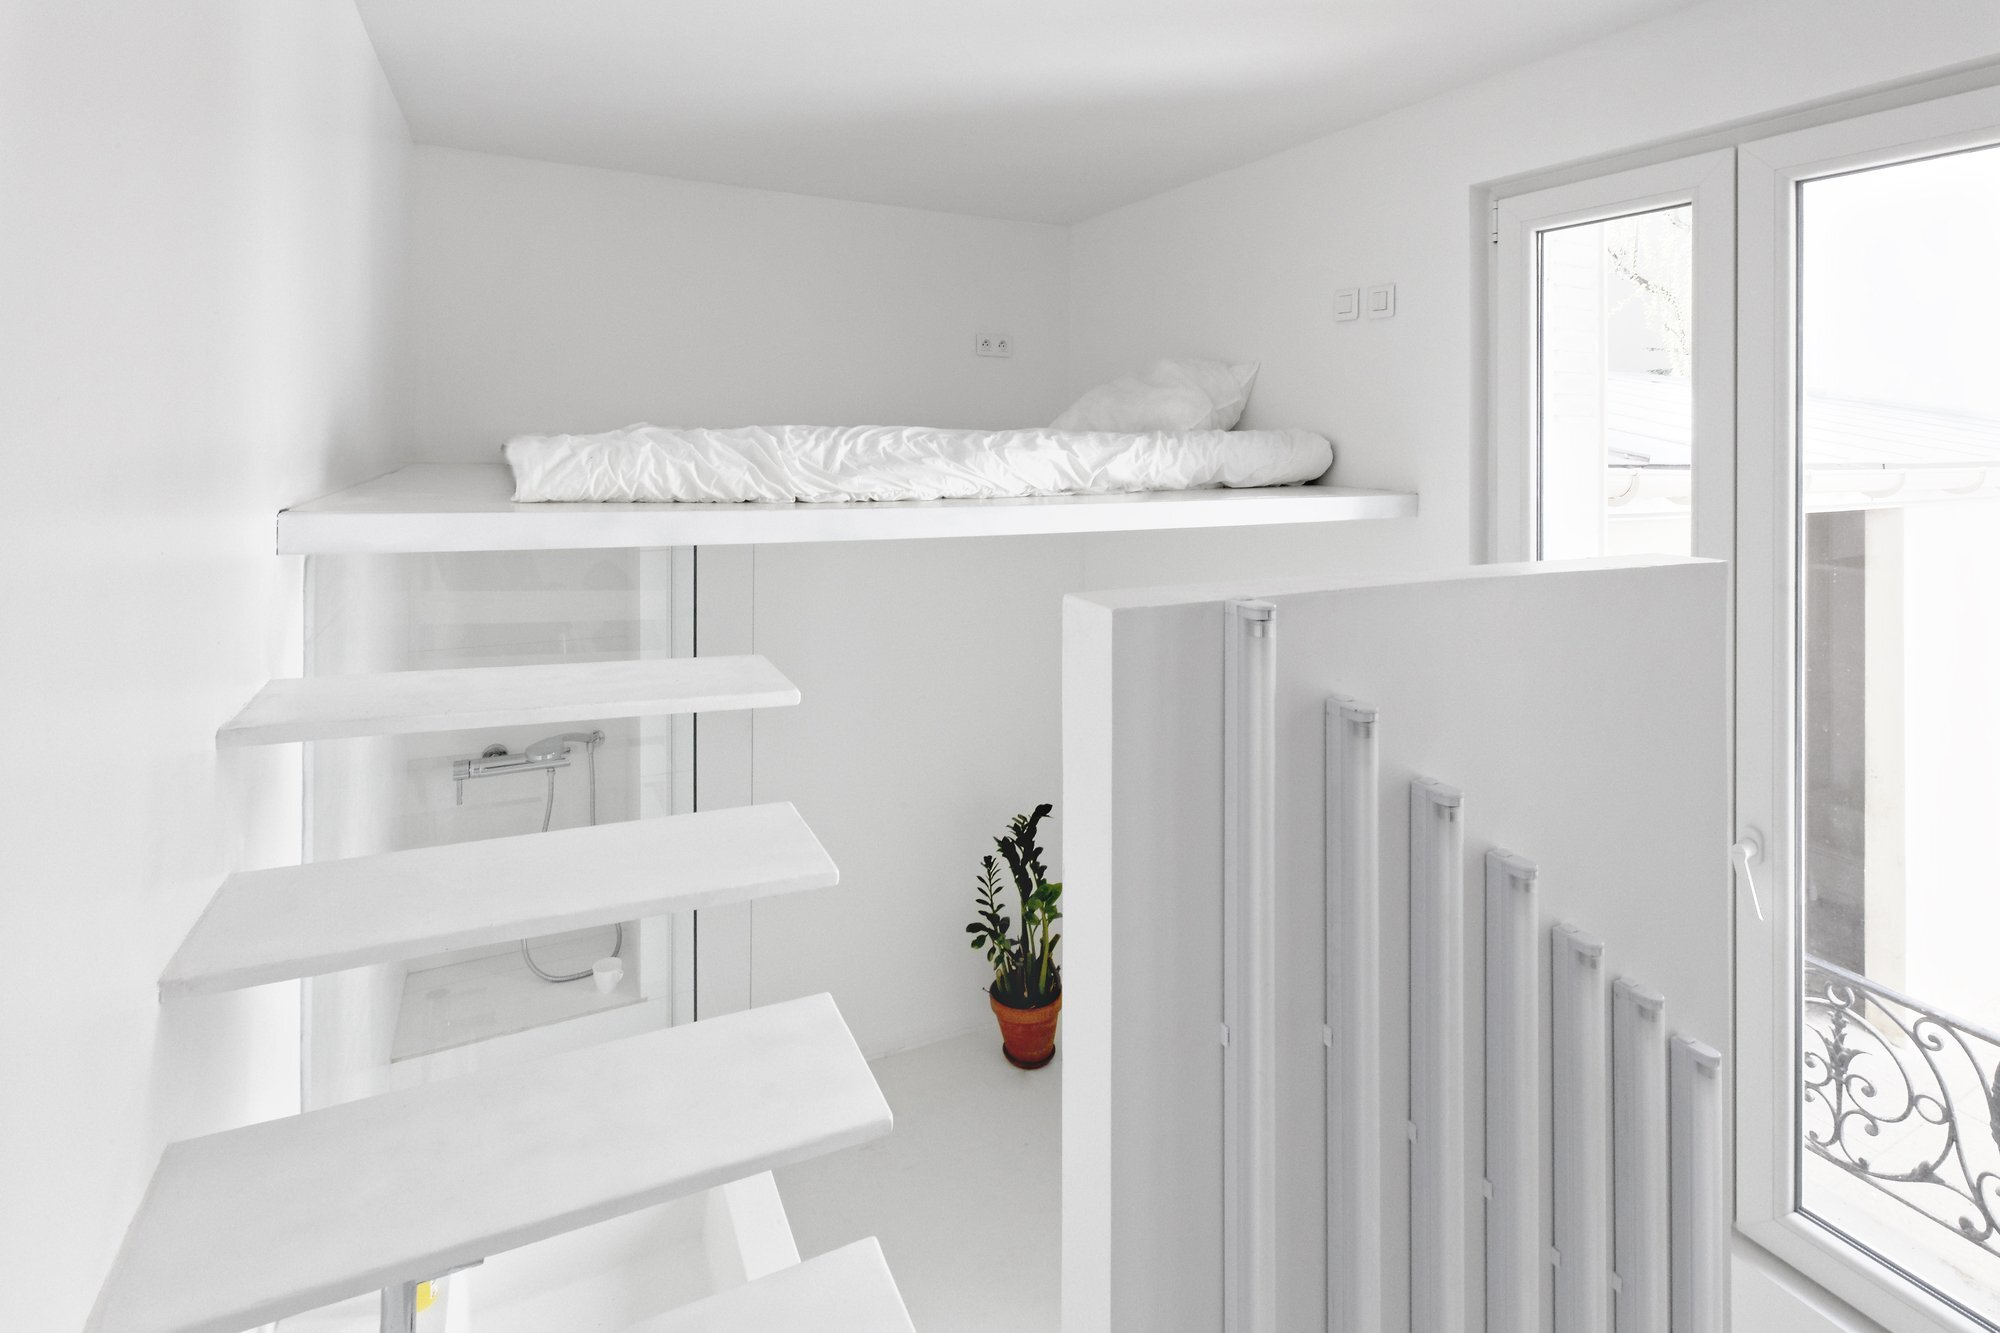 Appartement Spectral - BETILLON DORVAL‐BORY - Paris - France - Tiny Apartment - Loft Cantilever Staircase - Humble Homes